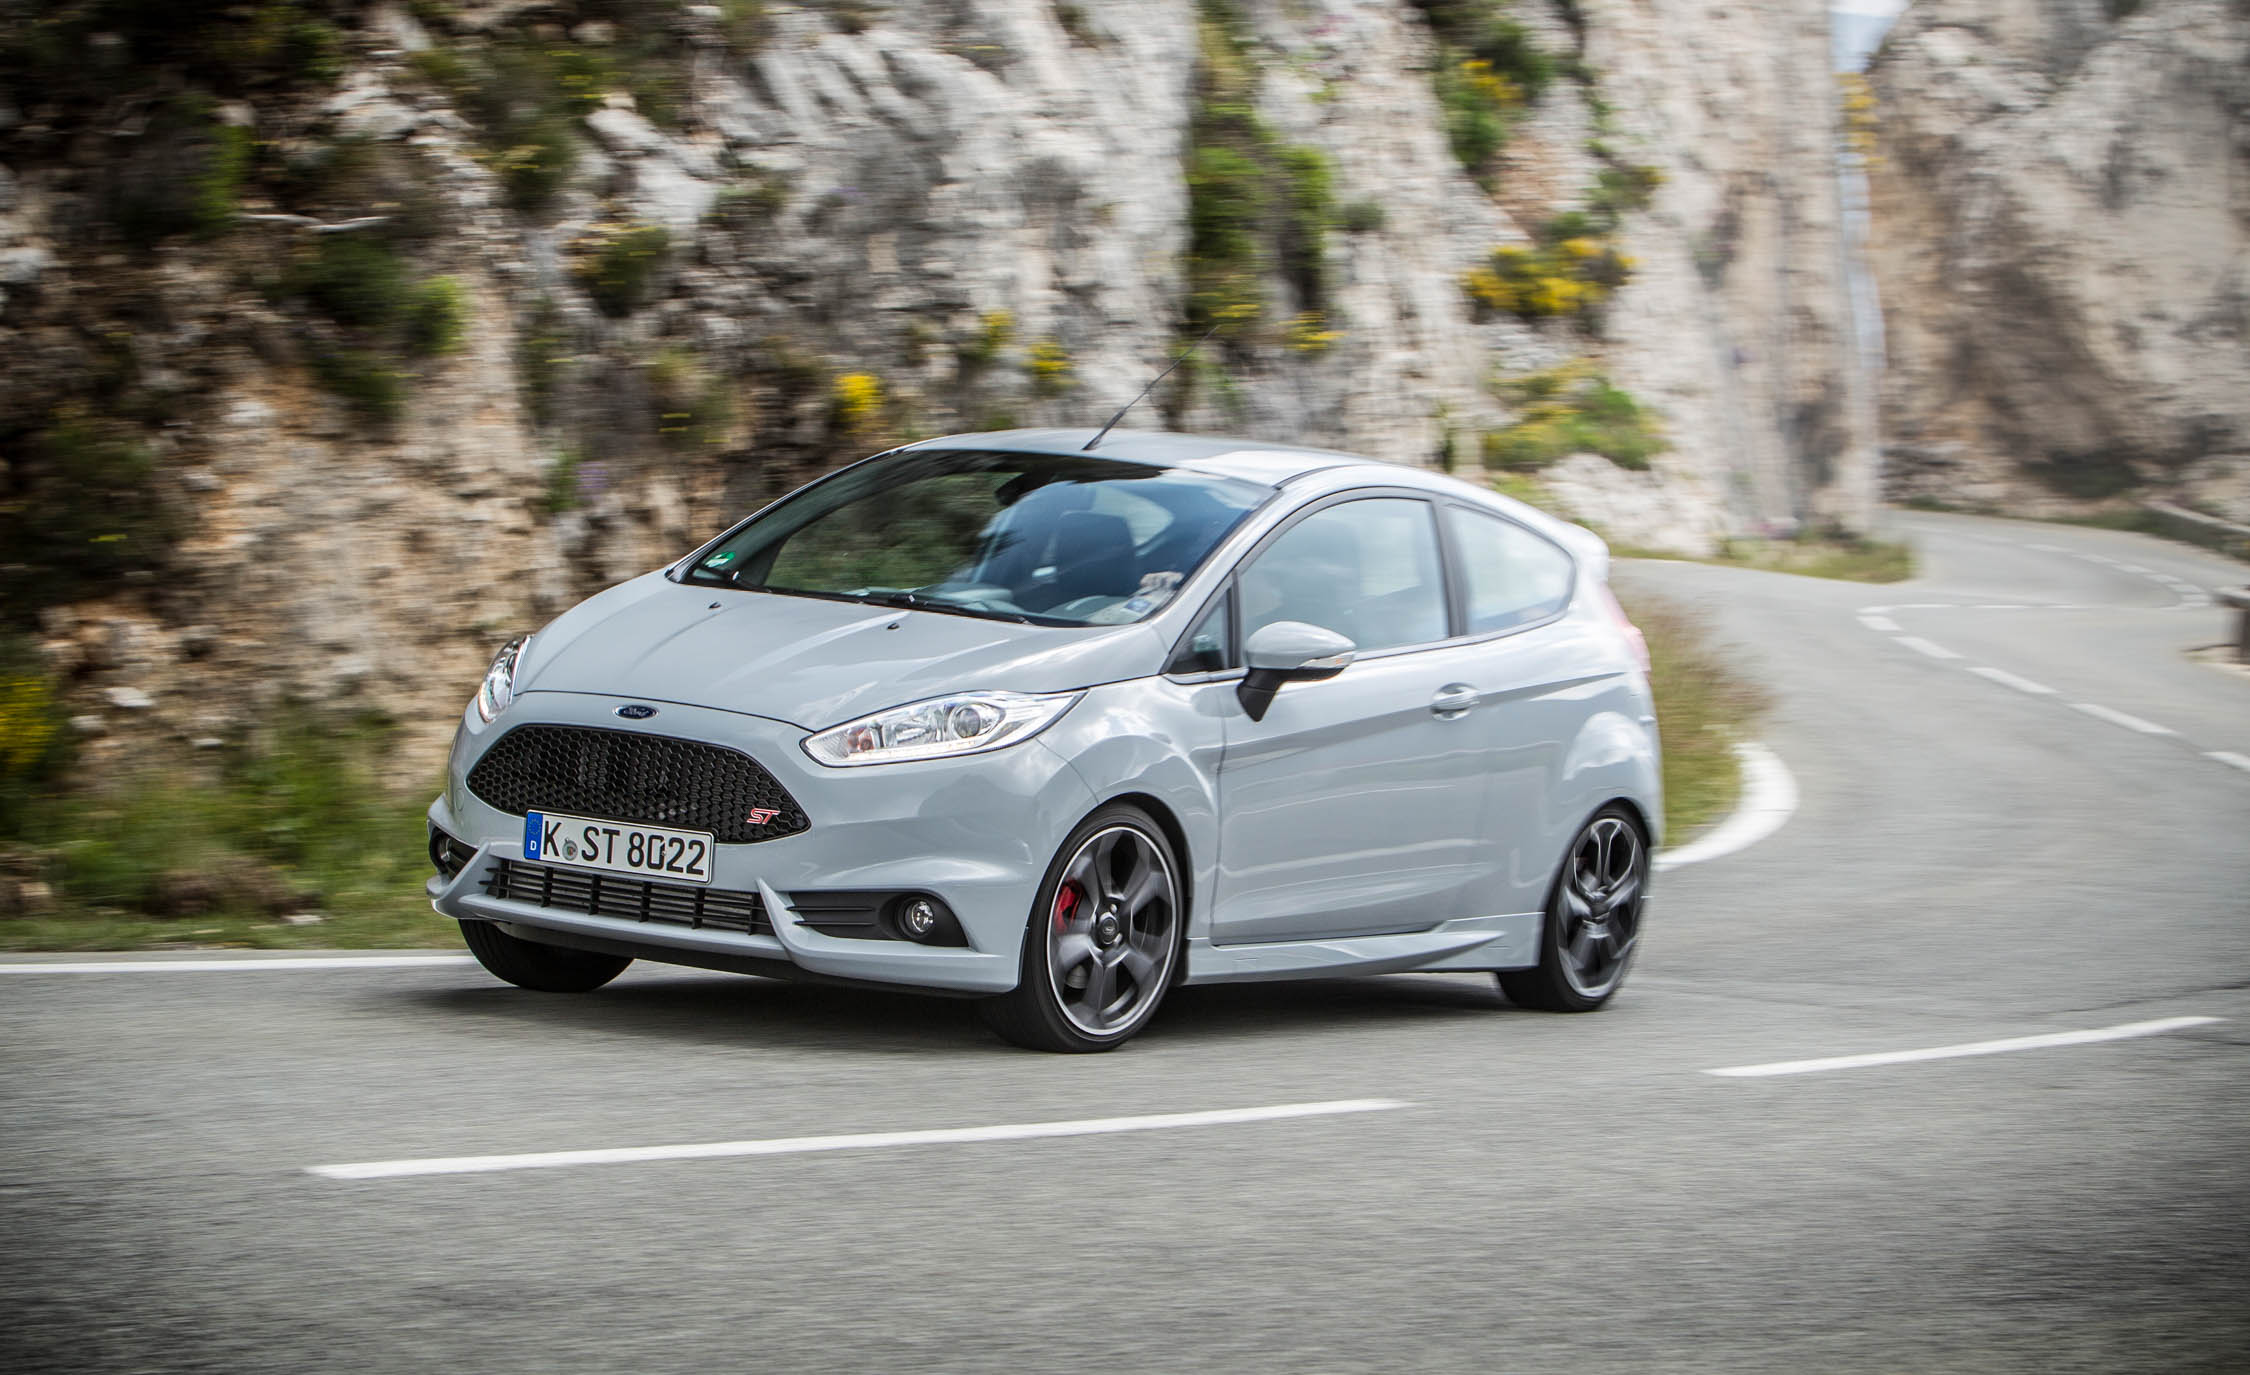 2017 Ford Fiesta ST200 Pictures Gallery (25 Images)